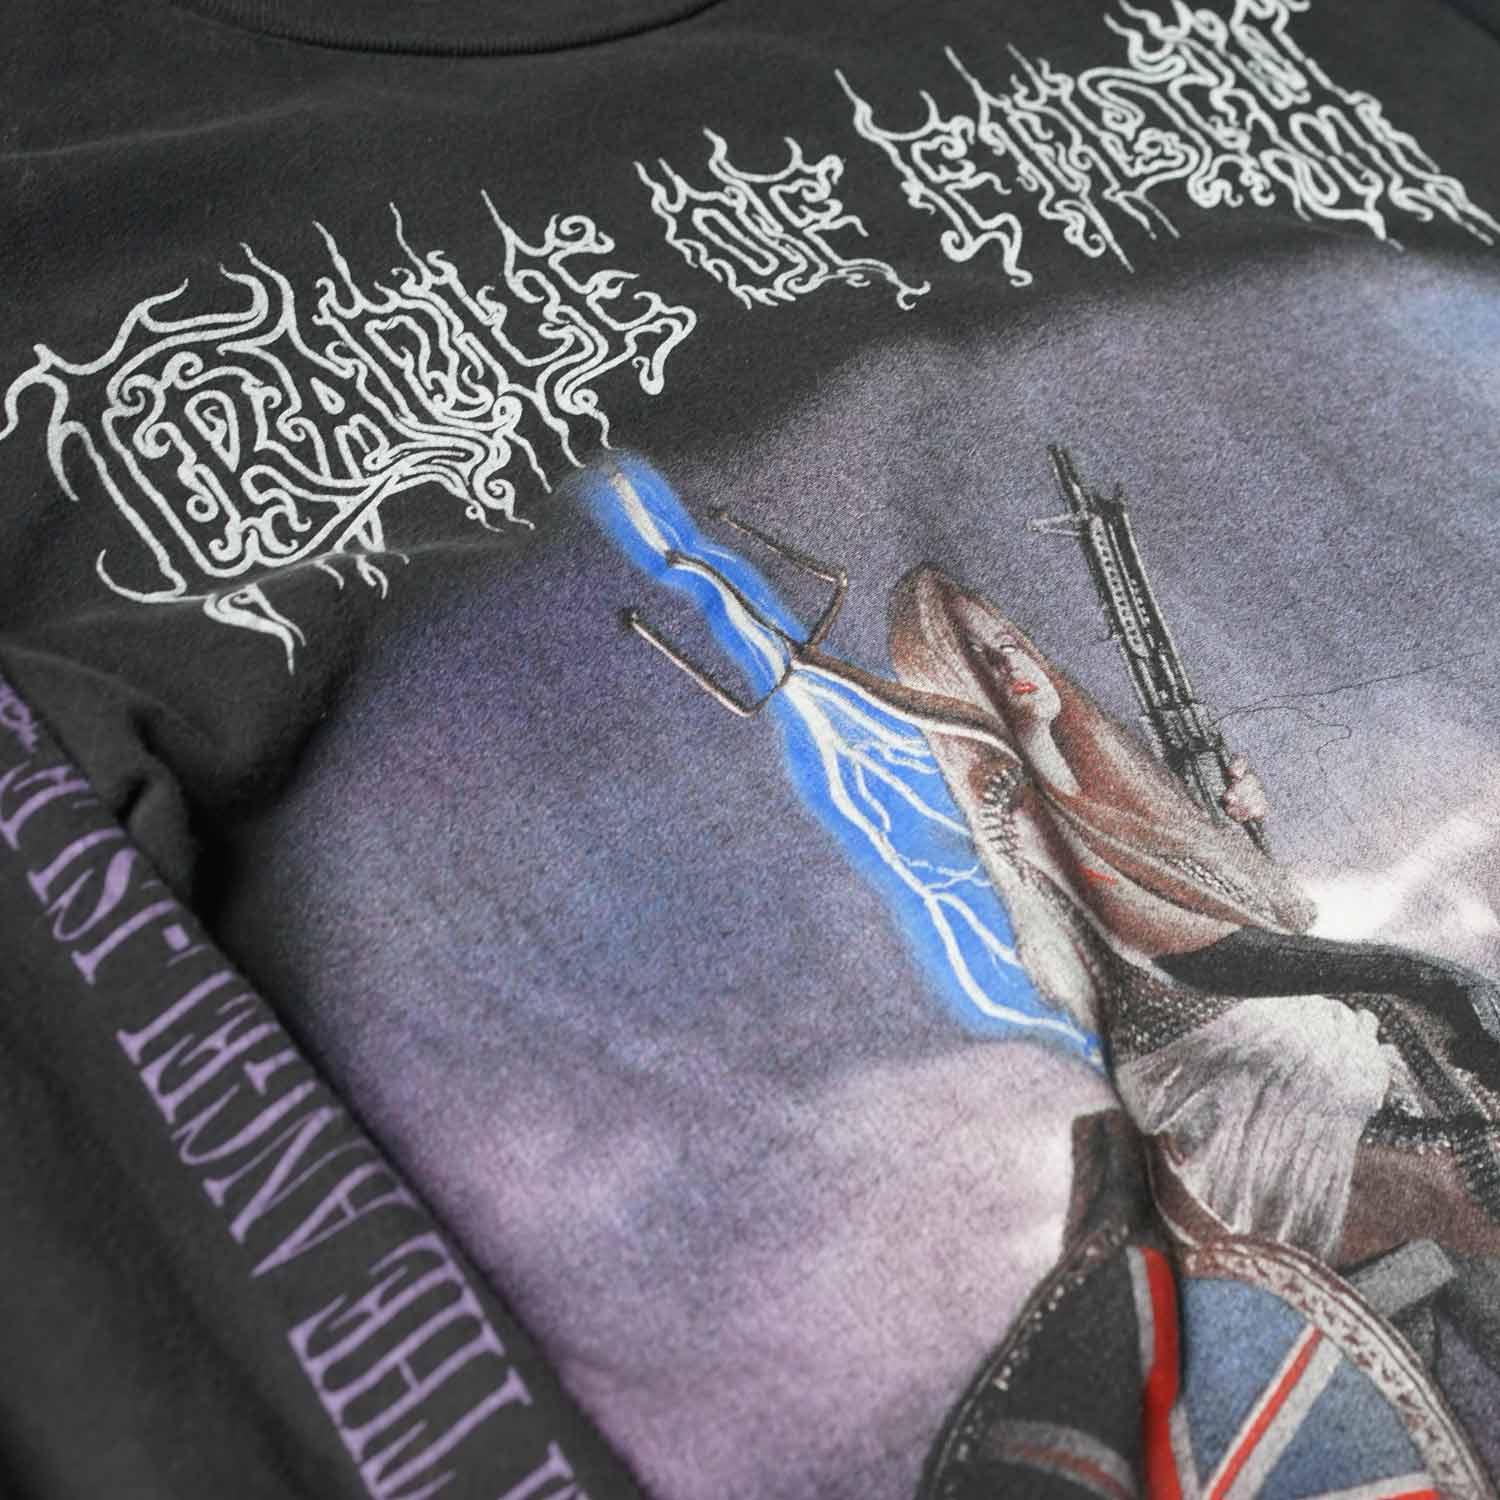 Cradle of Filth - Preparing For Millenial War Longsleeve